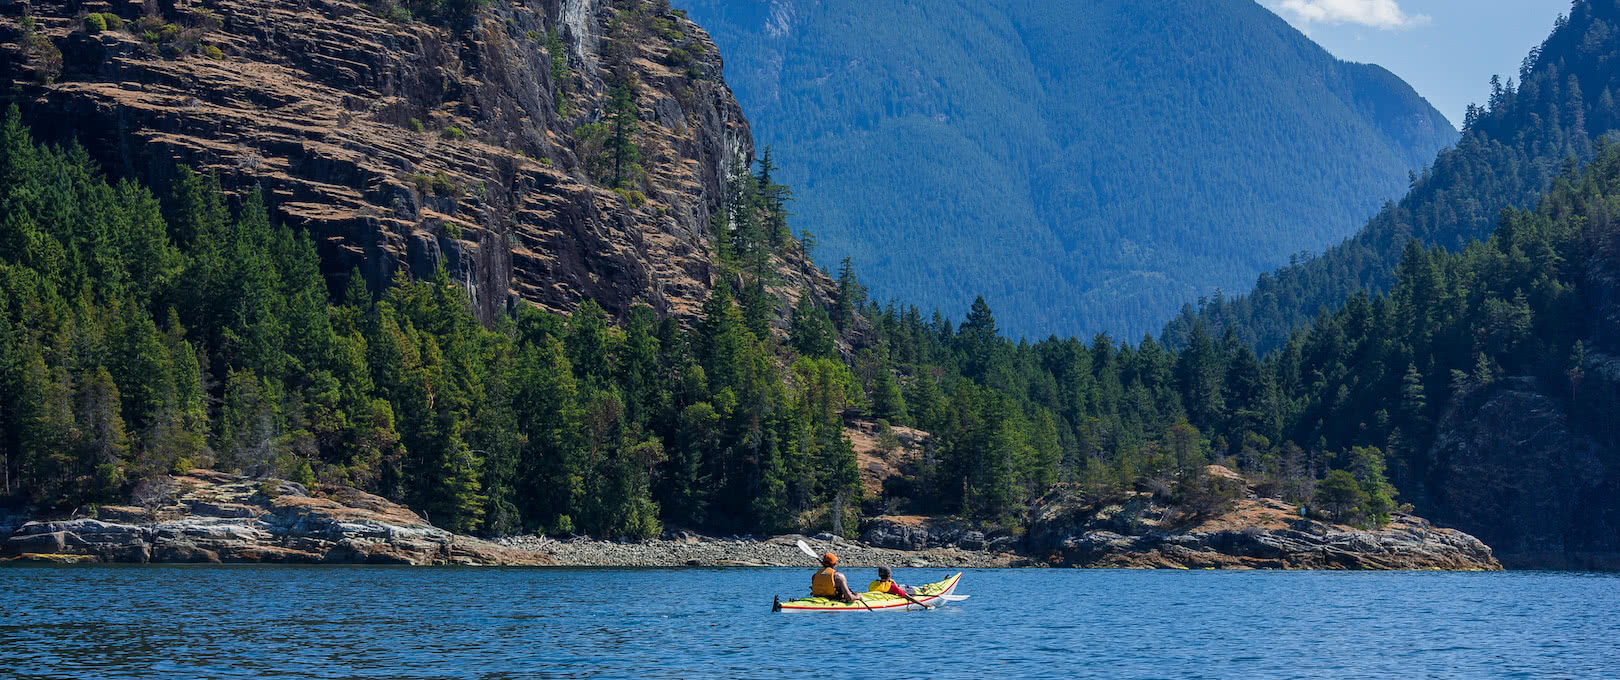 Kayakers approaching Tenedos Bay in Desolation Sound Marine Park